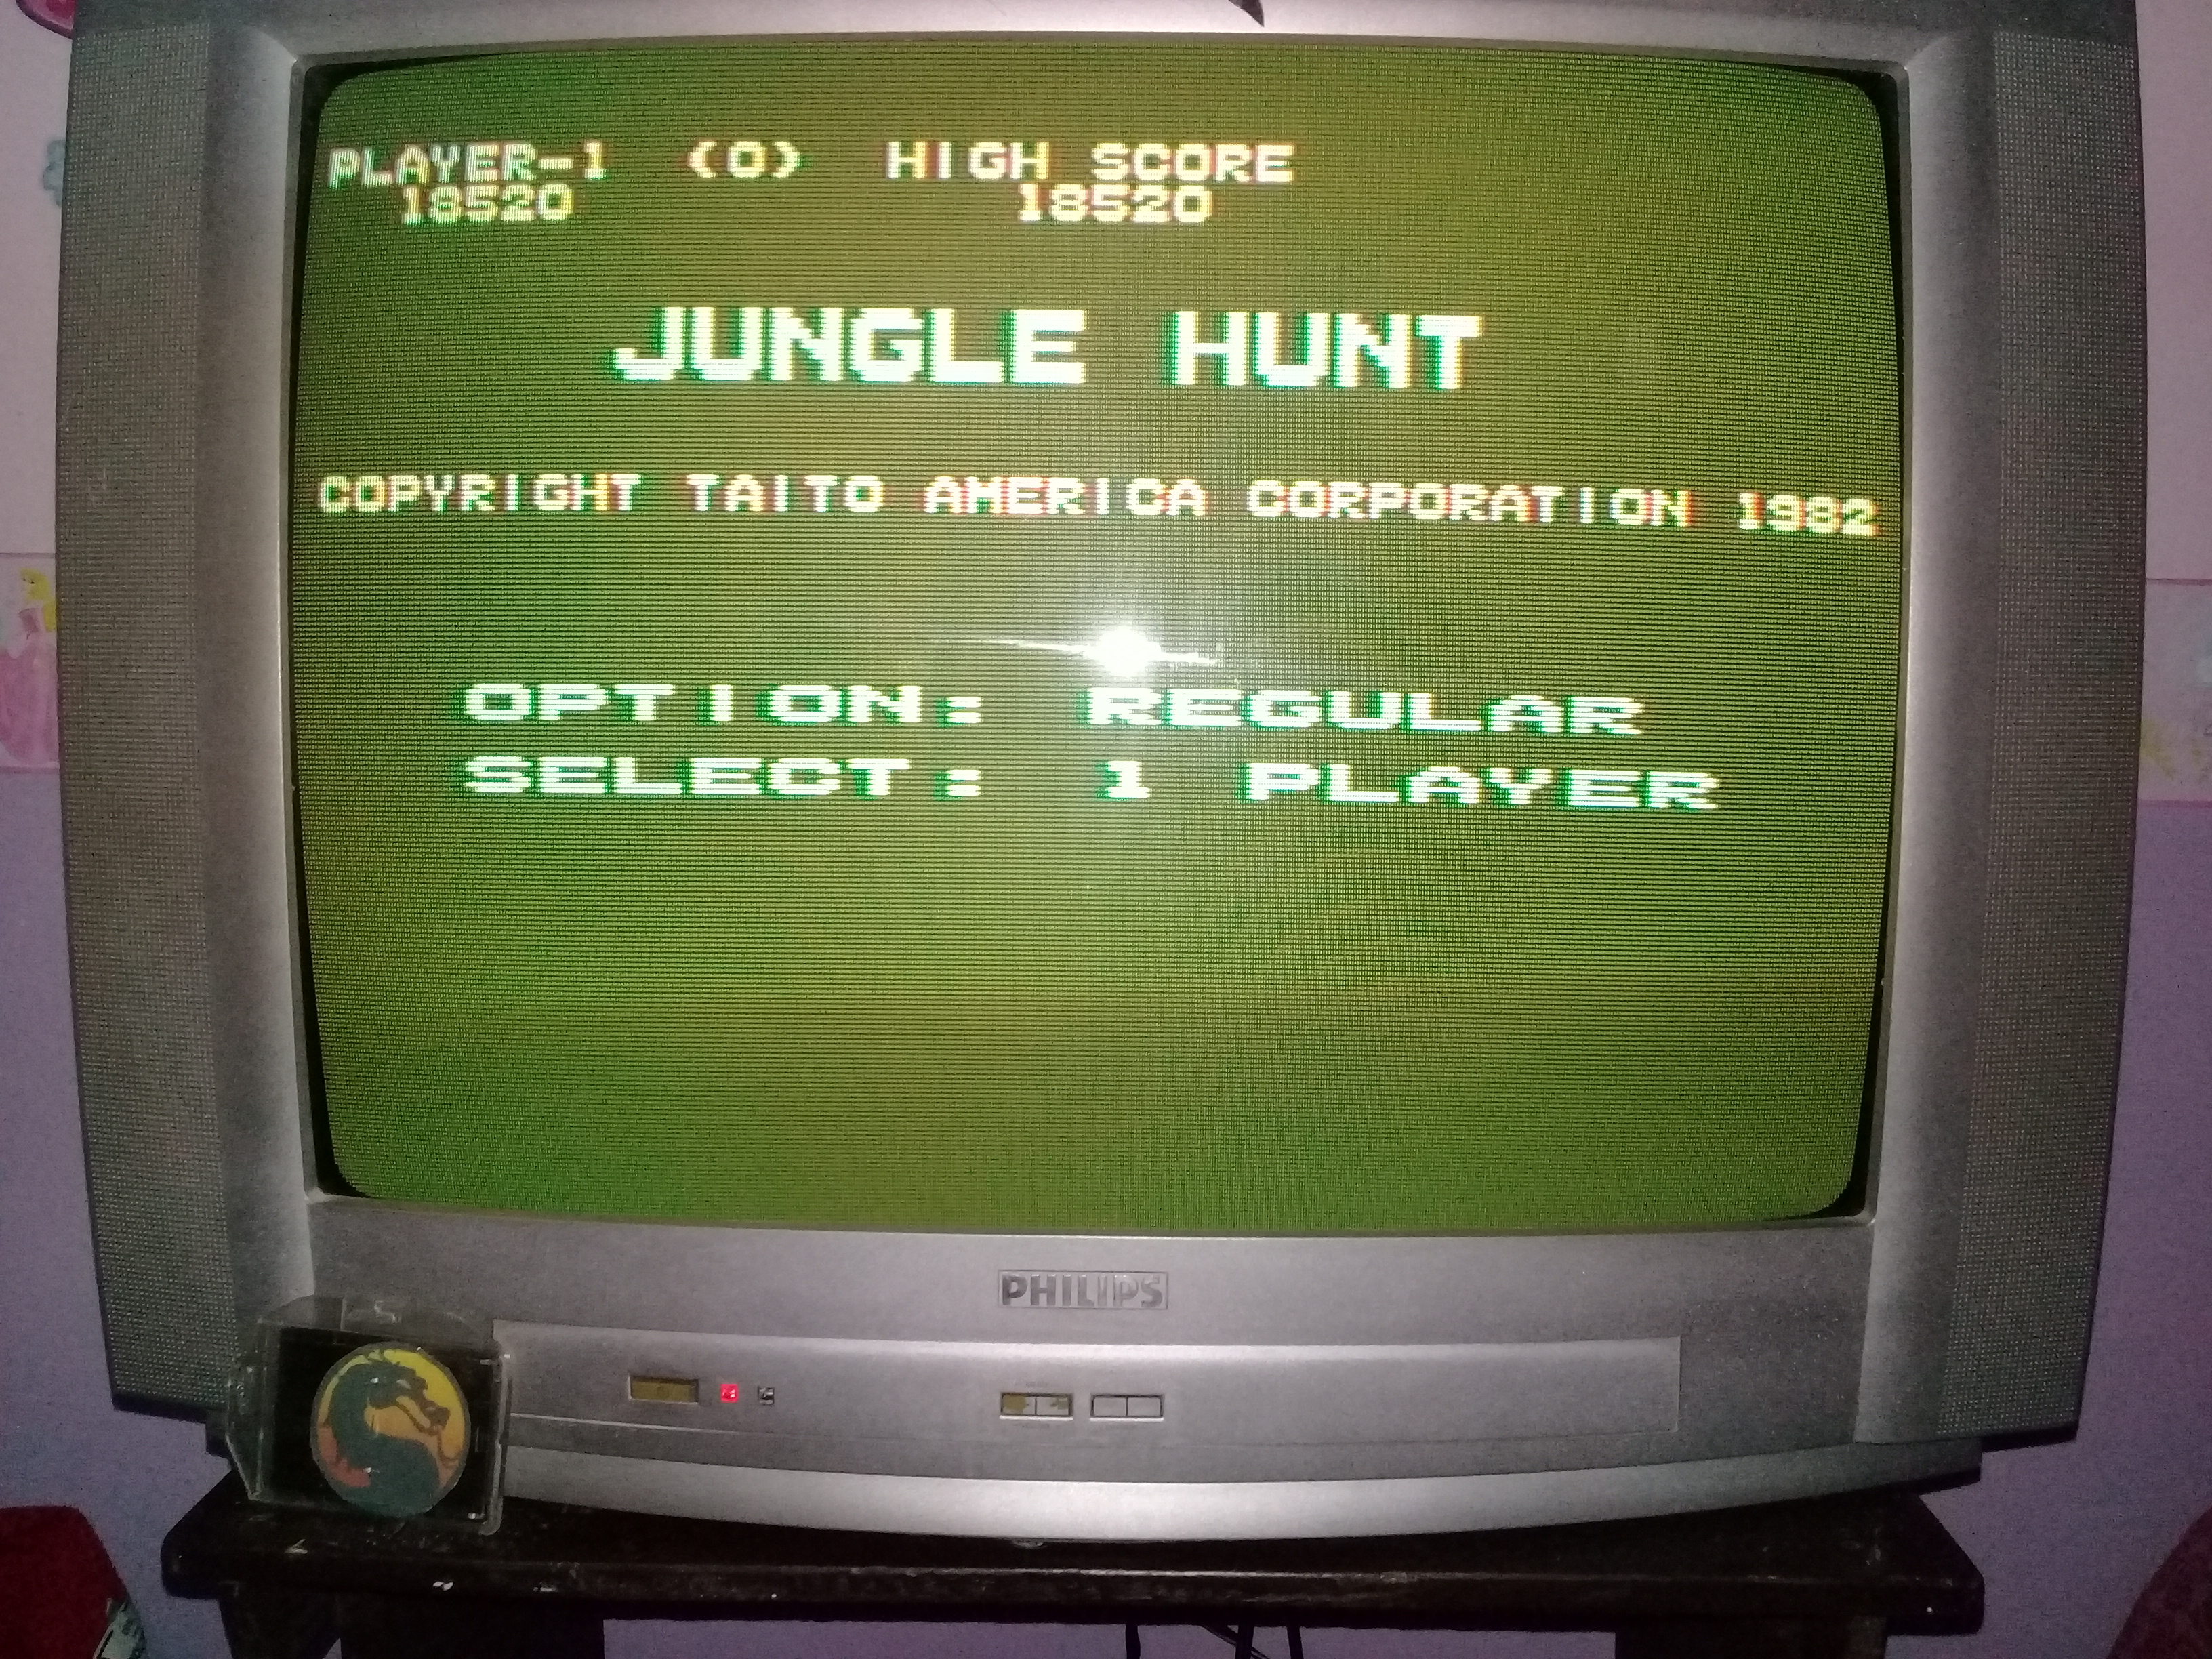 omargeddon: Jungle Hunt [Regular] (Atari 400/800/XL/XE) 18,520 points on 2020-03-05 01:01:31